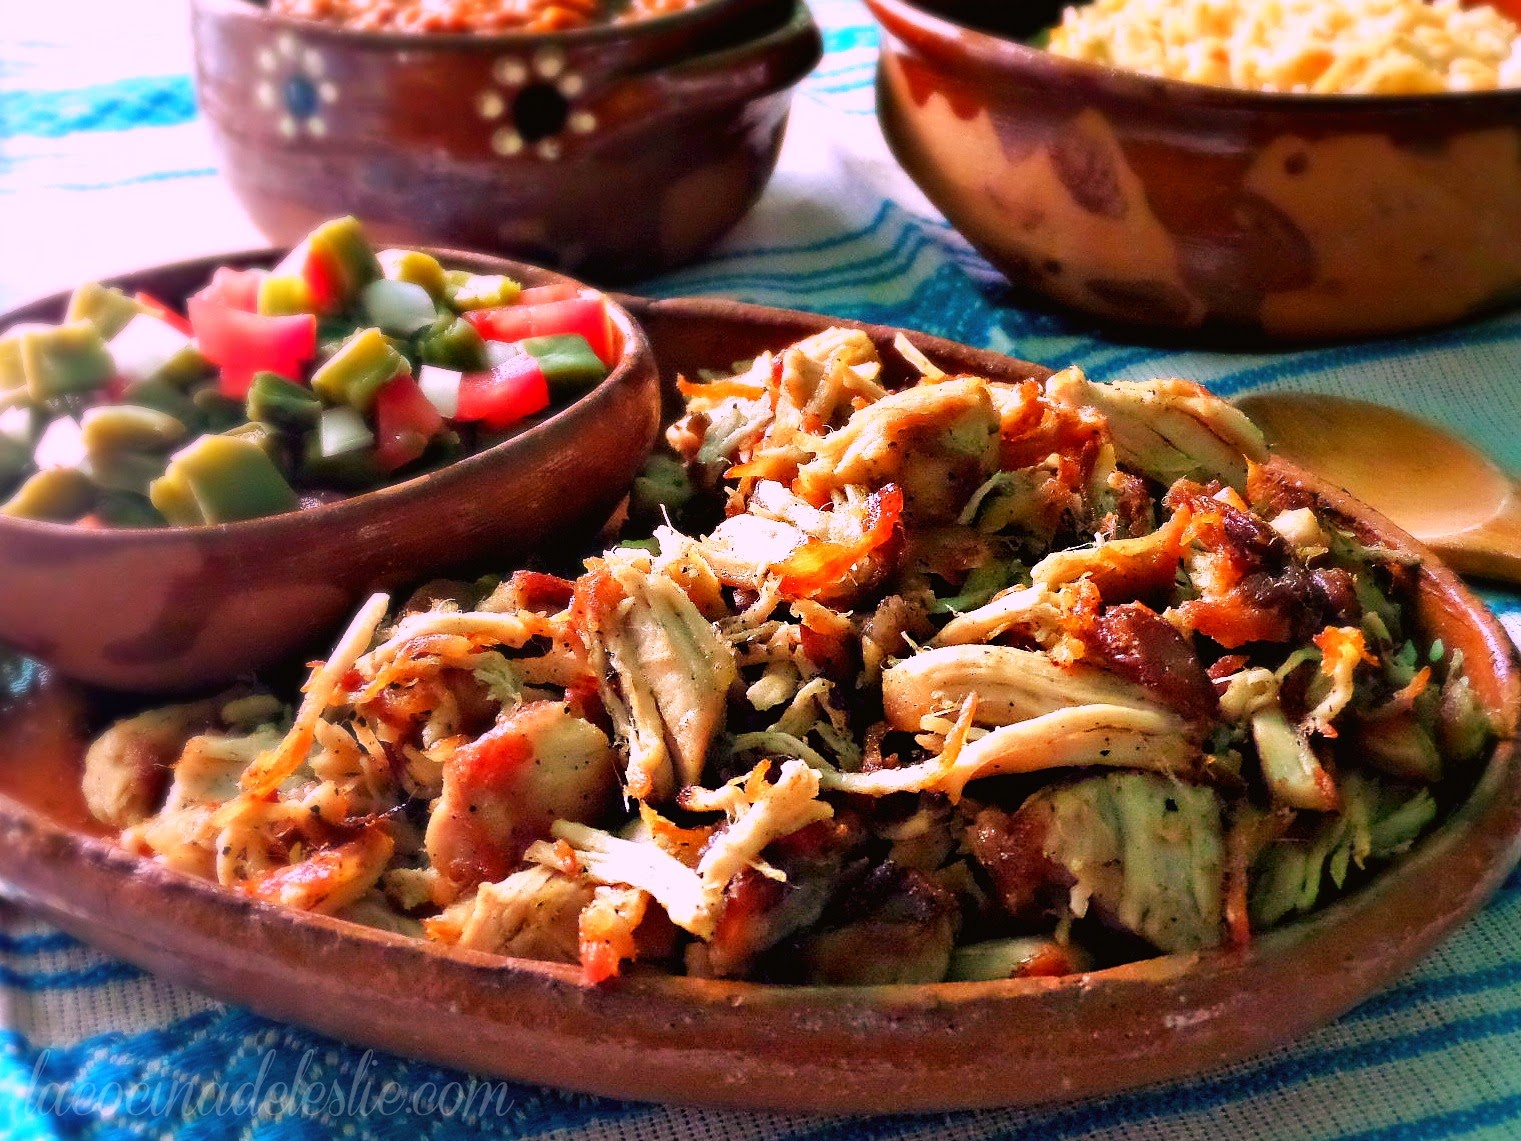 How to make Mexican carnitas at home - lacocinadeleslie.com